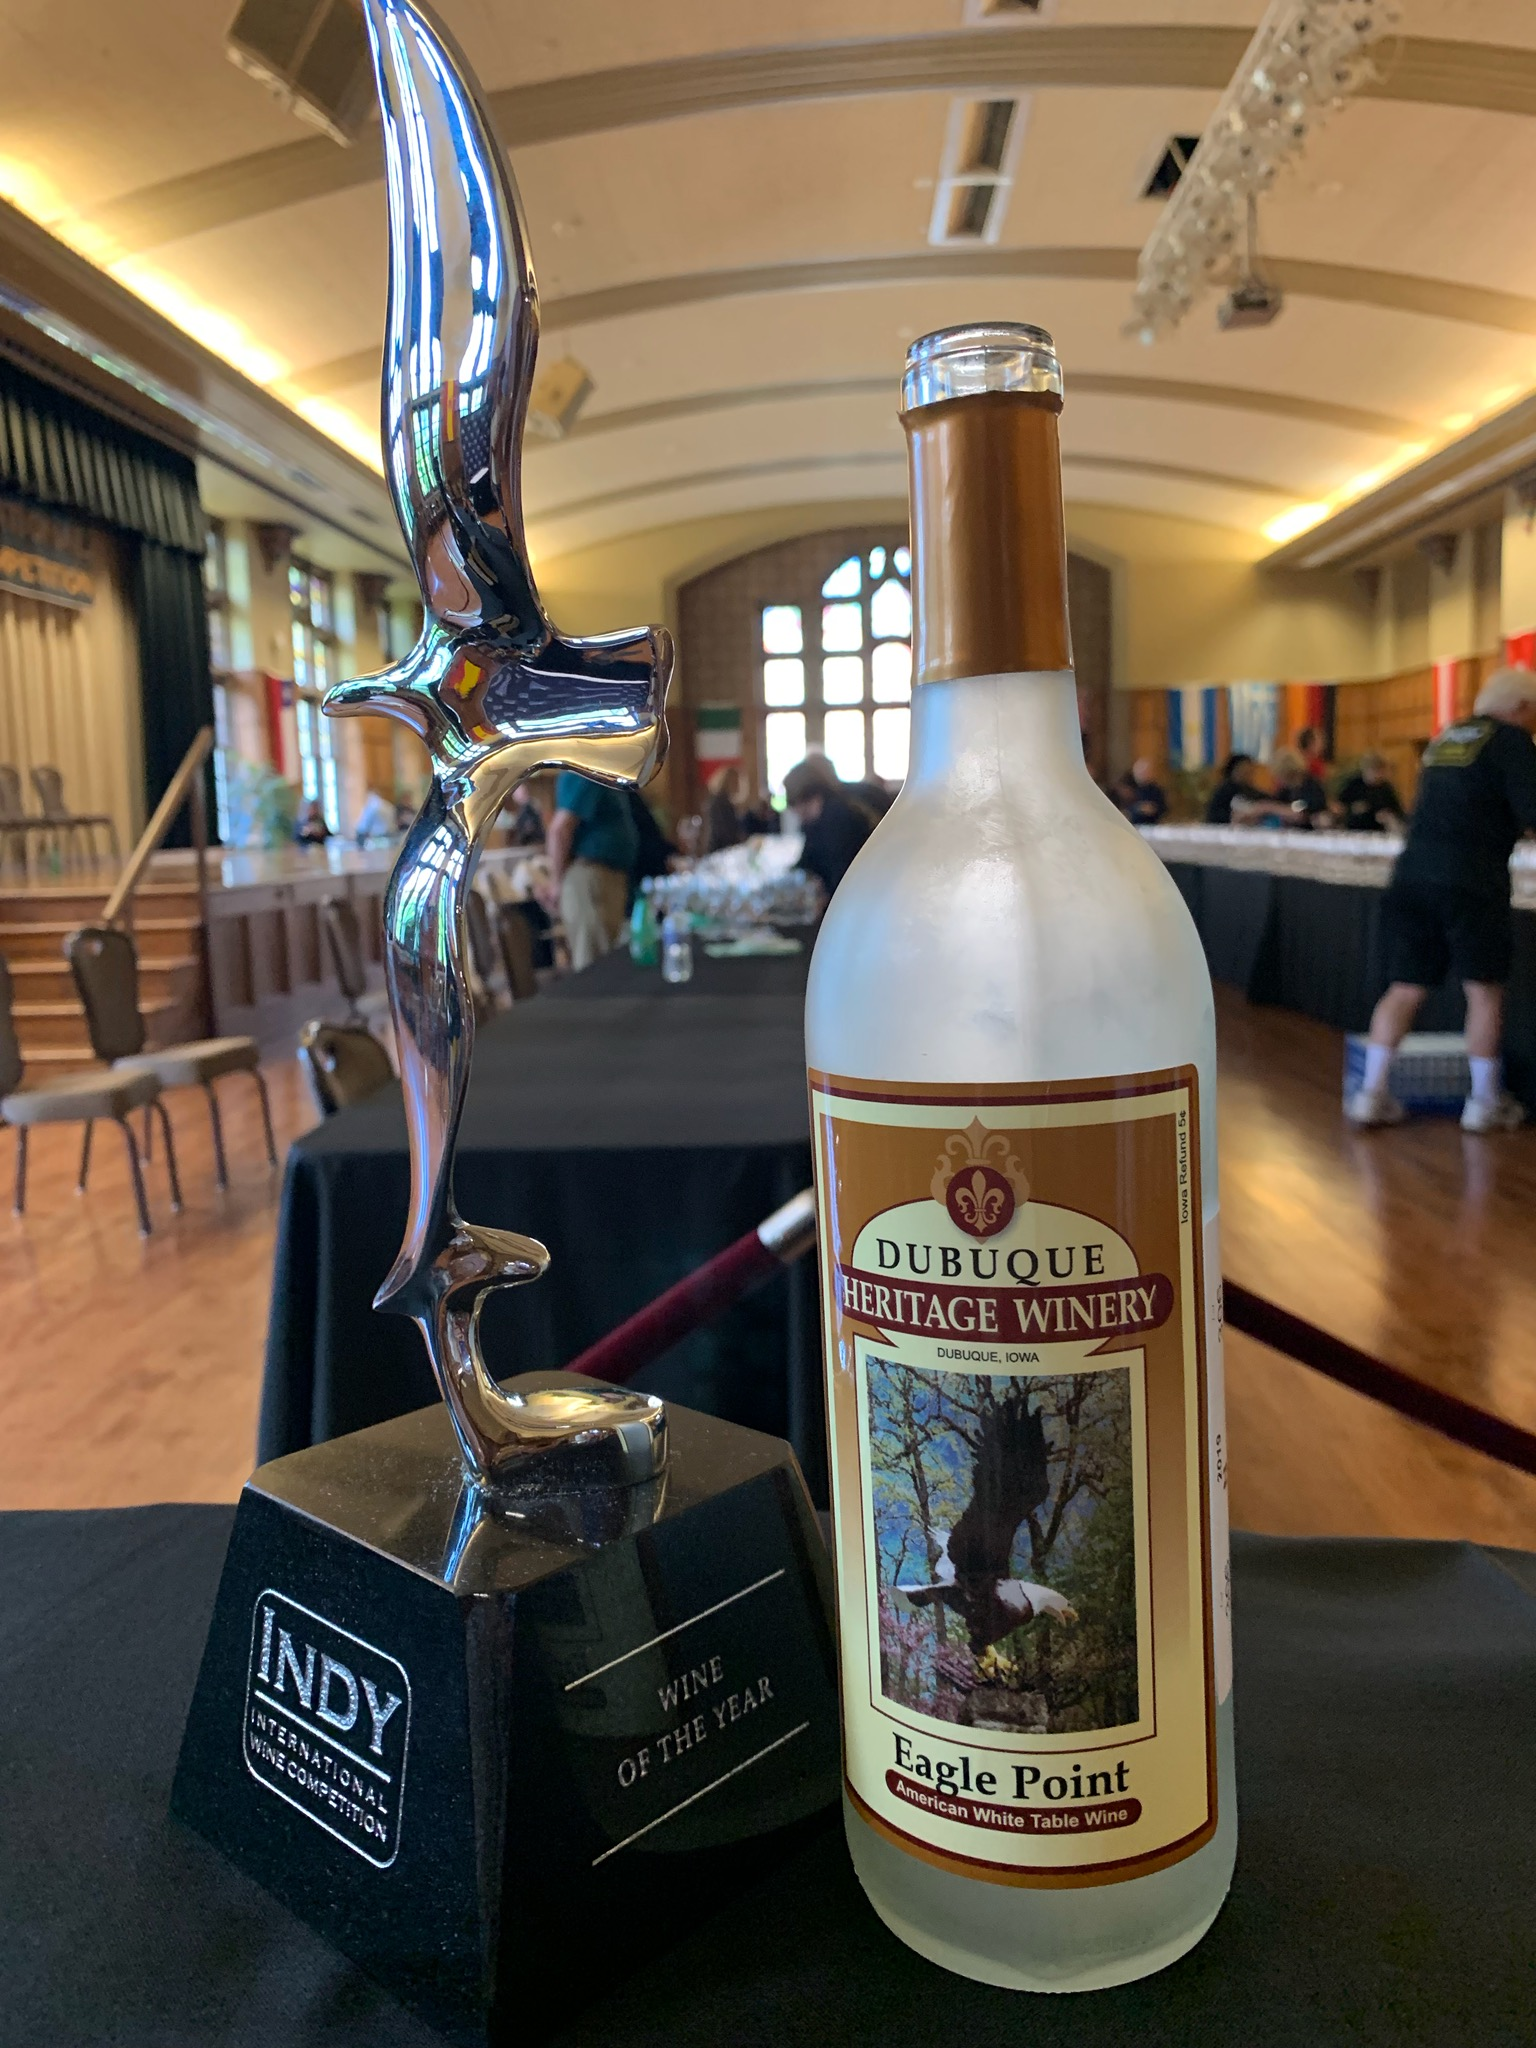 Iowa wine named Wine of the Year at 2019 Indy International Wine Competition. Submitted photo, Anne Zwink.